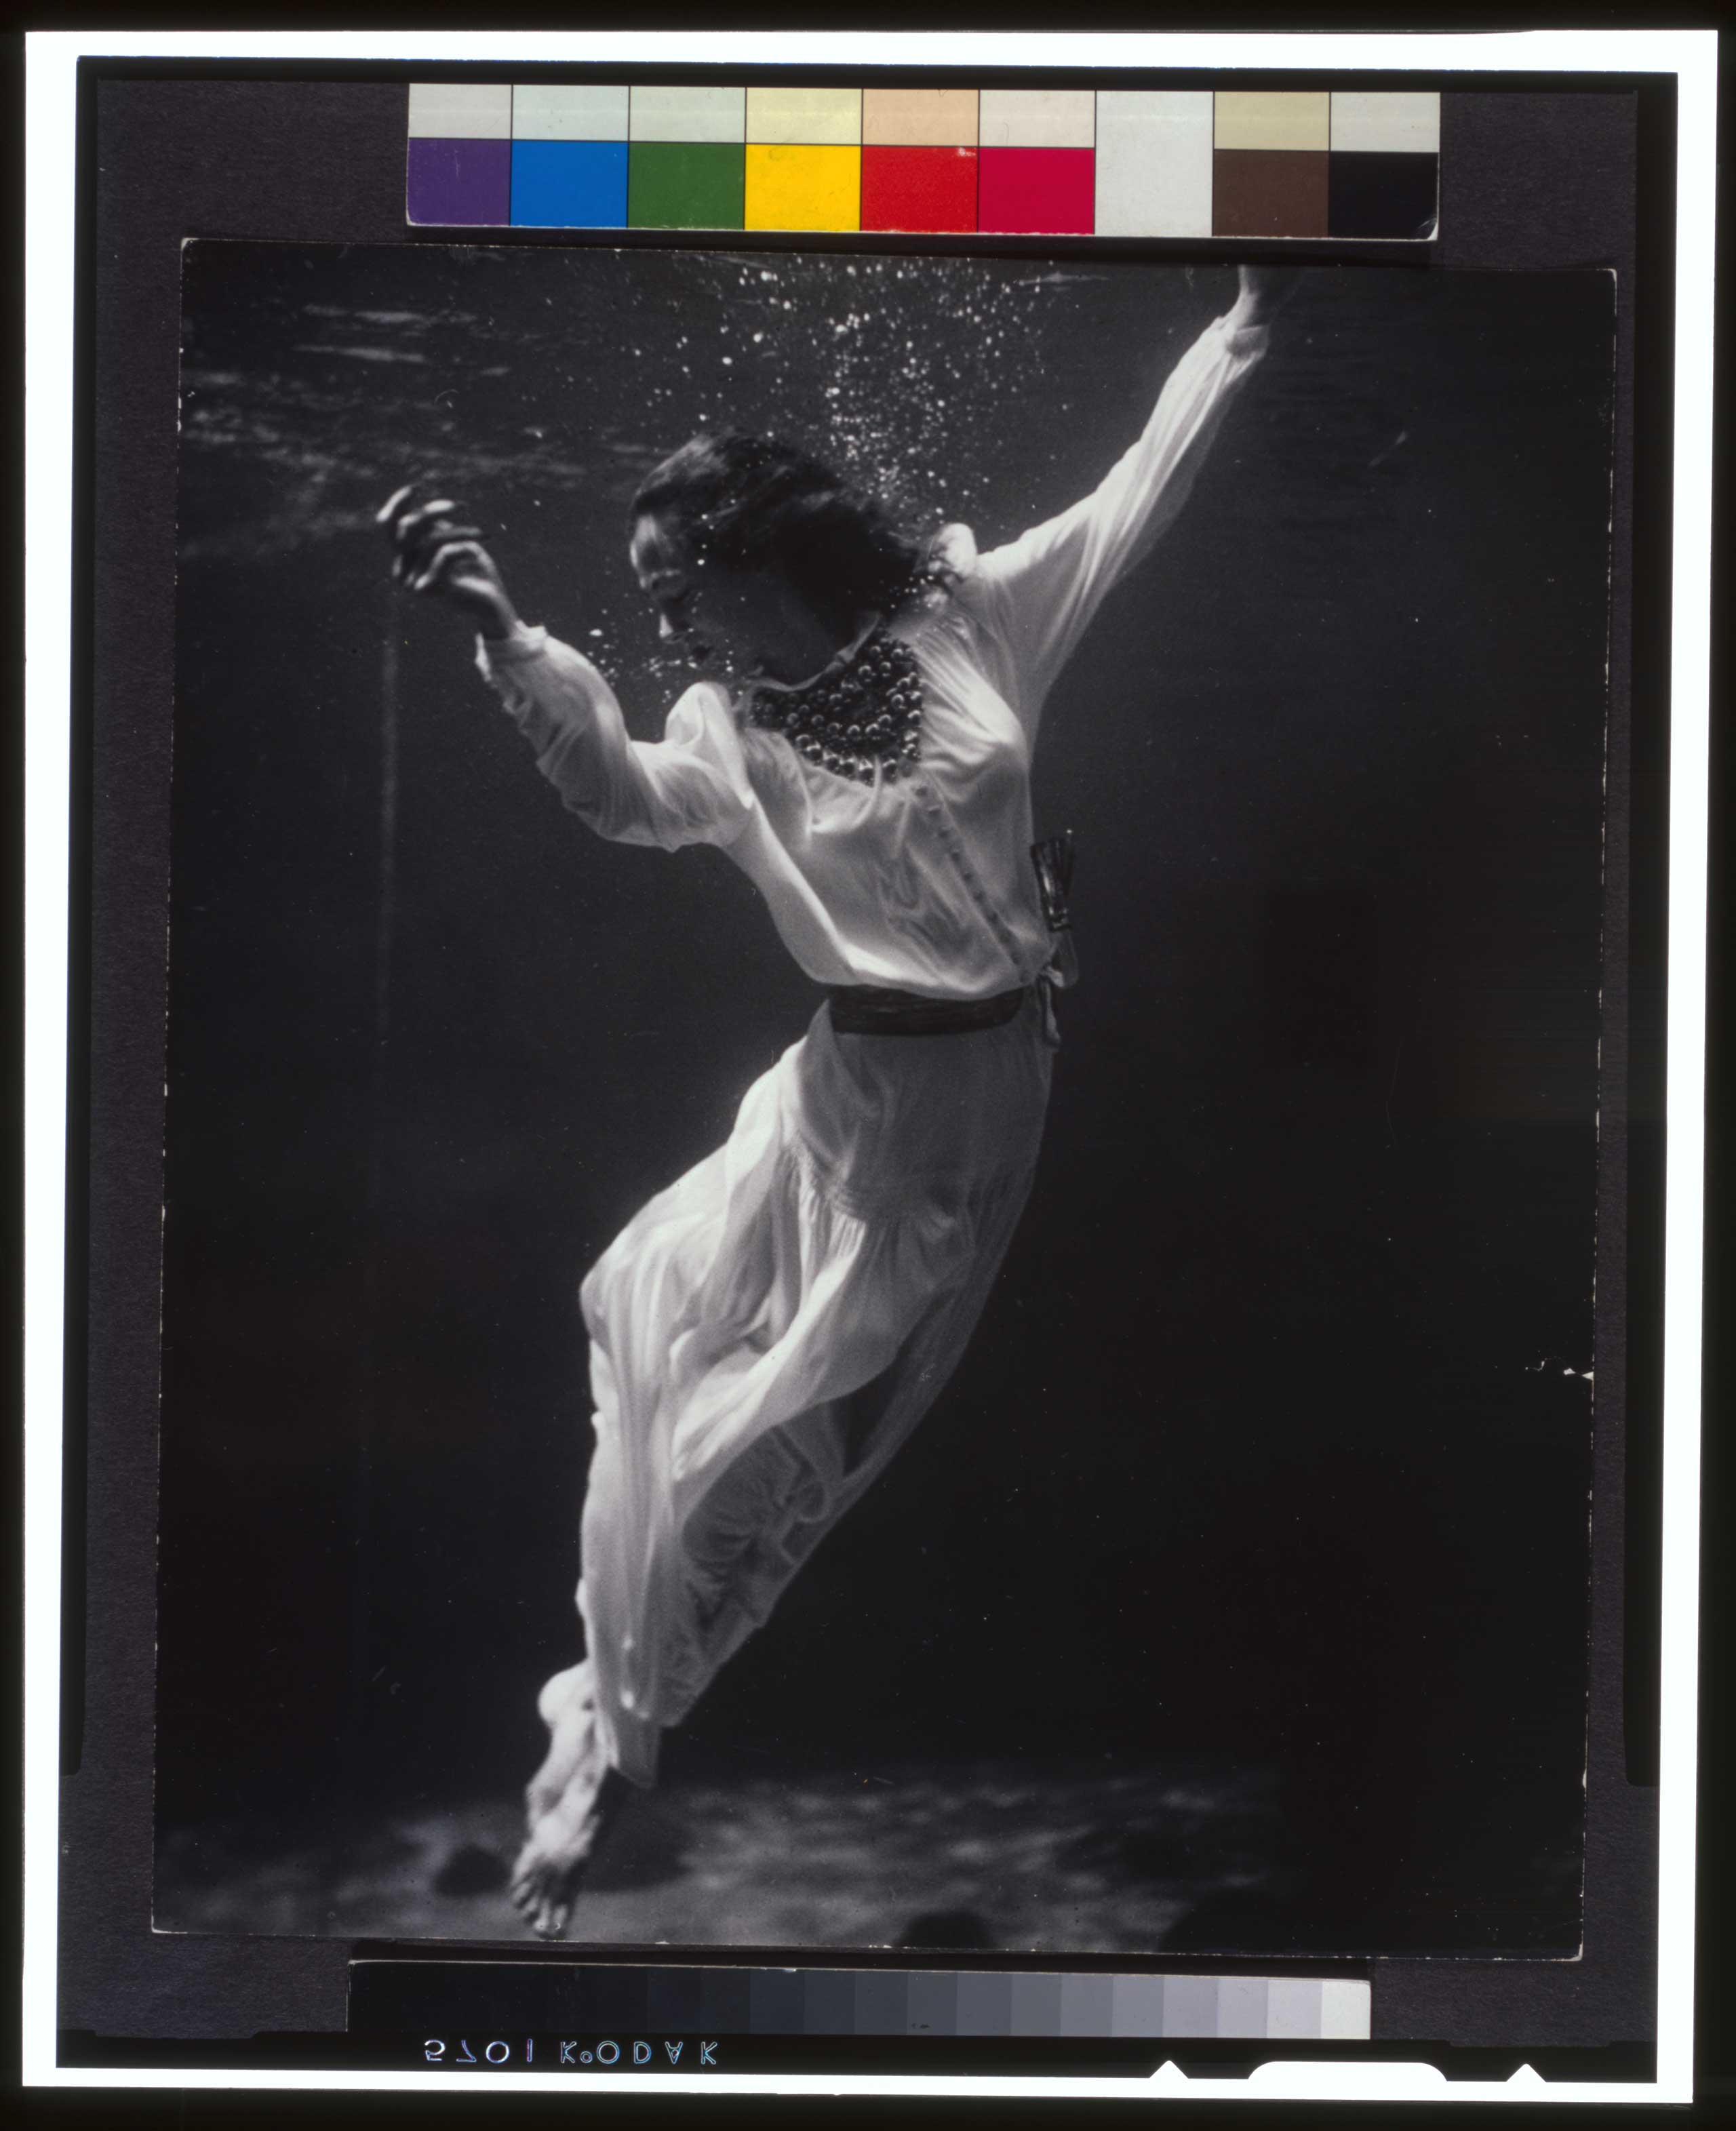 Fashion model underwater in dolphin tank, Marineland, Florida. Published in Vogue, Oct. 1939.